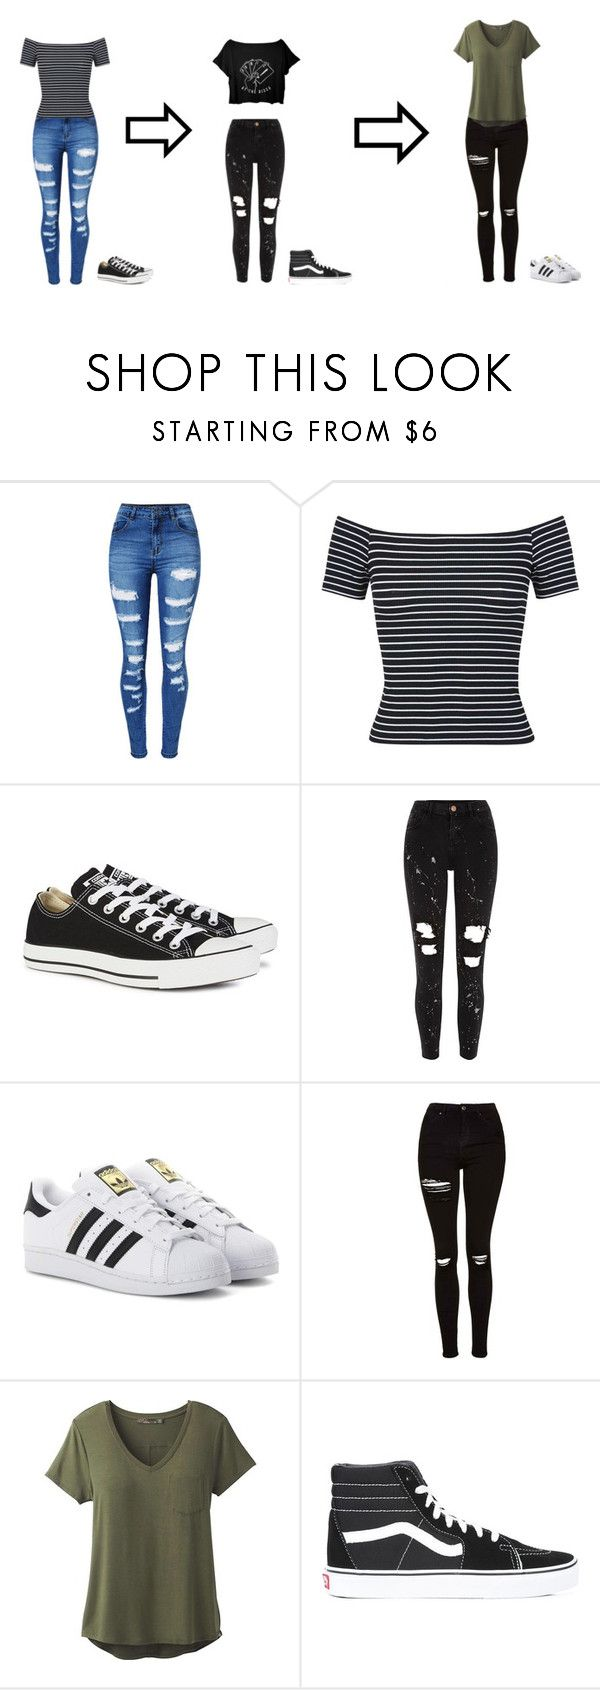 """""""Ripped jeans"""" by diamonds-ruby on Polyvore featuring WithChic, Miss Selfridge, Converse, River Island, adidas Originals, Topshop, prAna and Vans"""